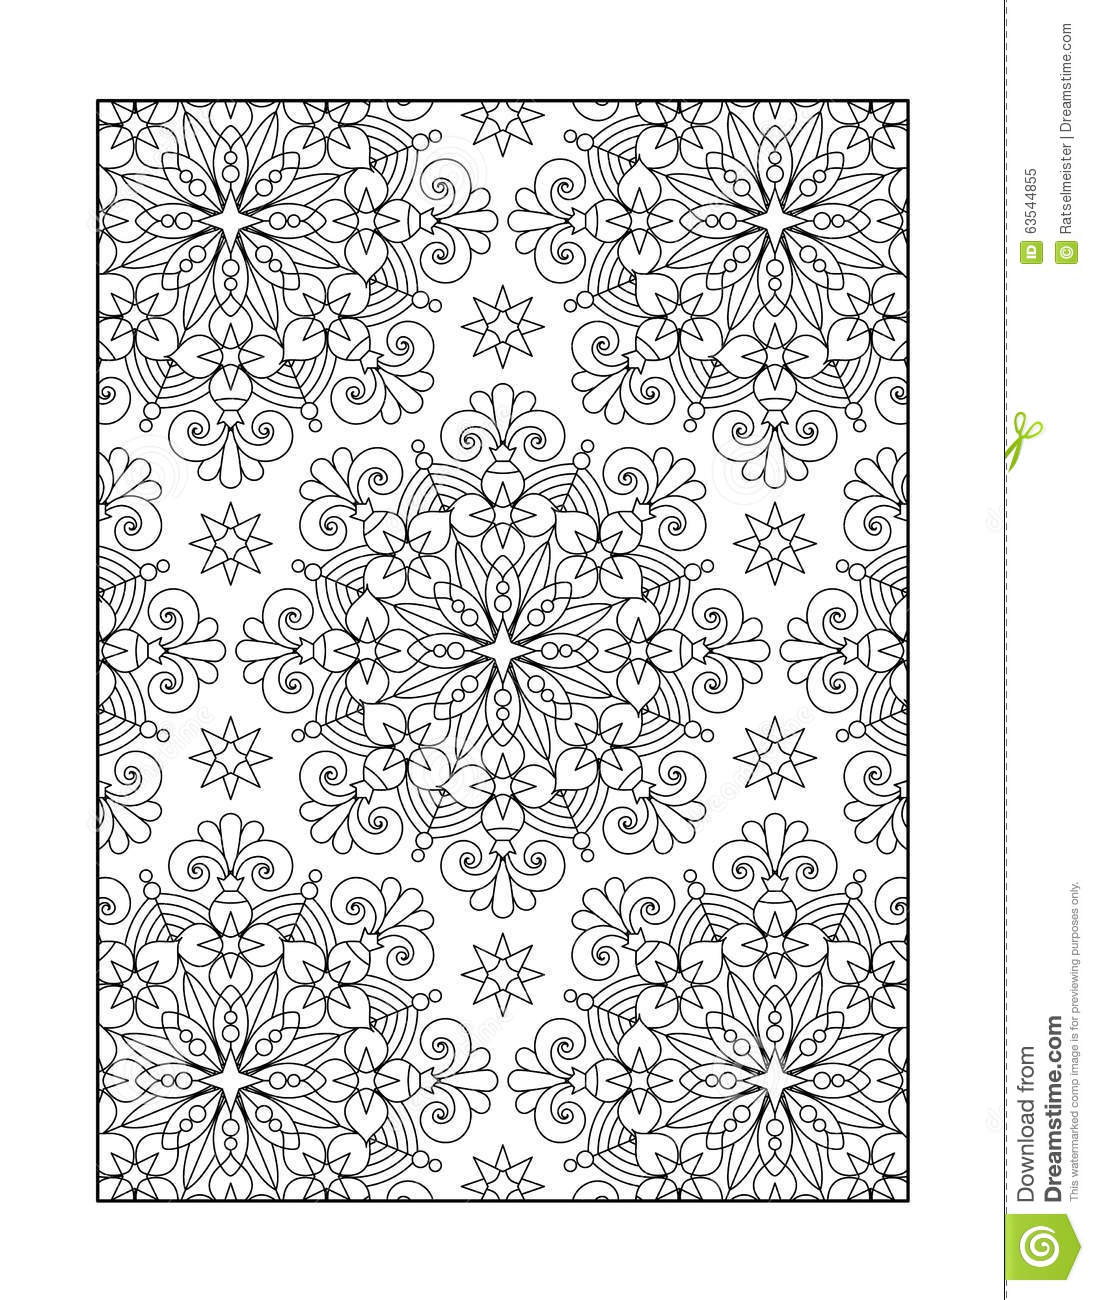 Coloring Page For Adults Or Black And White Ornamental